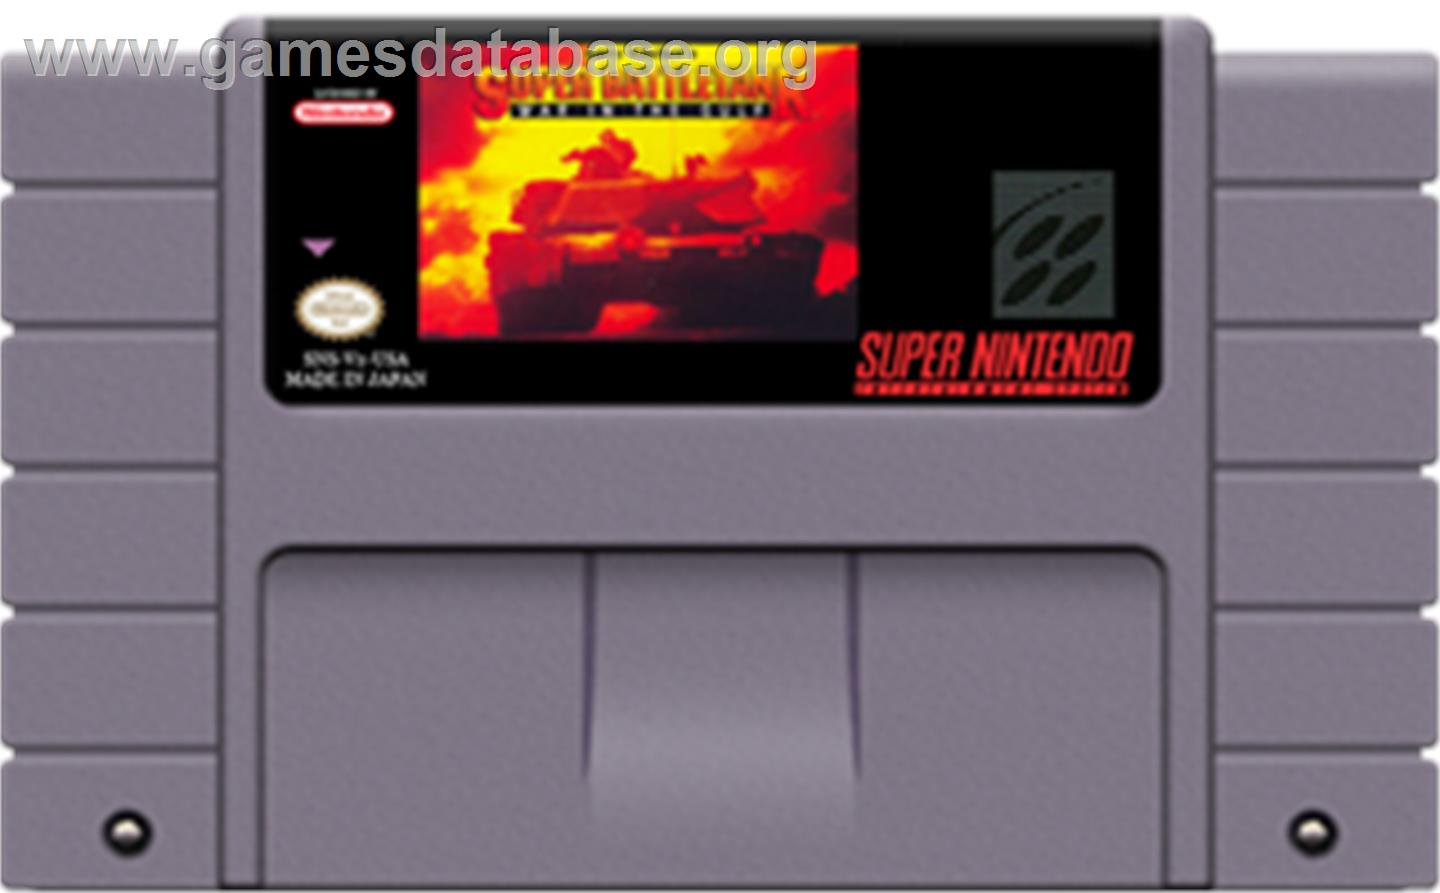 Garry Kitchen's Super Battletank: War in the Gulf - Nintendo SNES - Artwork - Cartridge